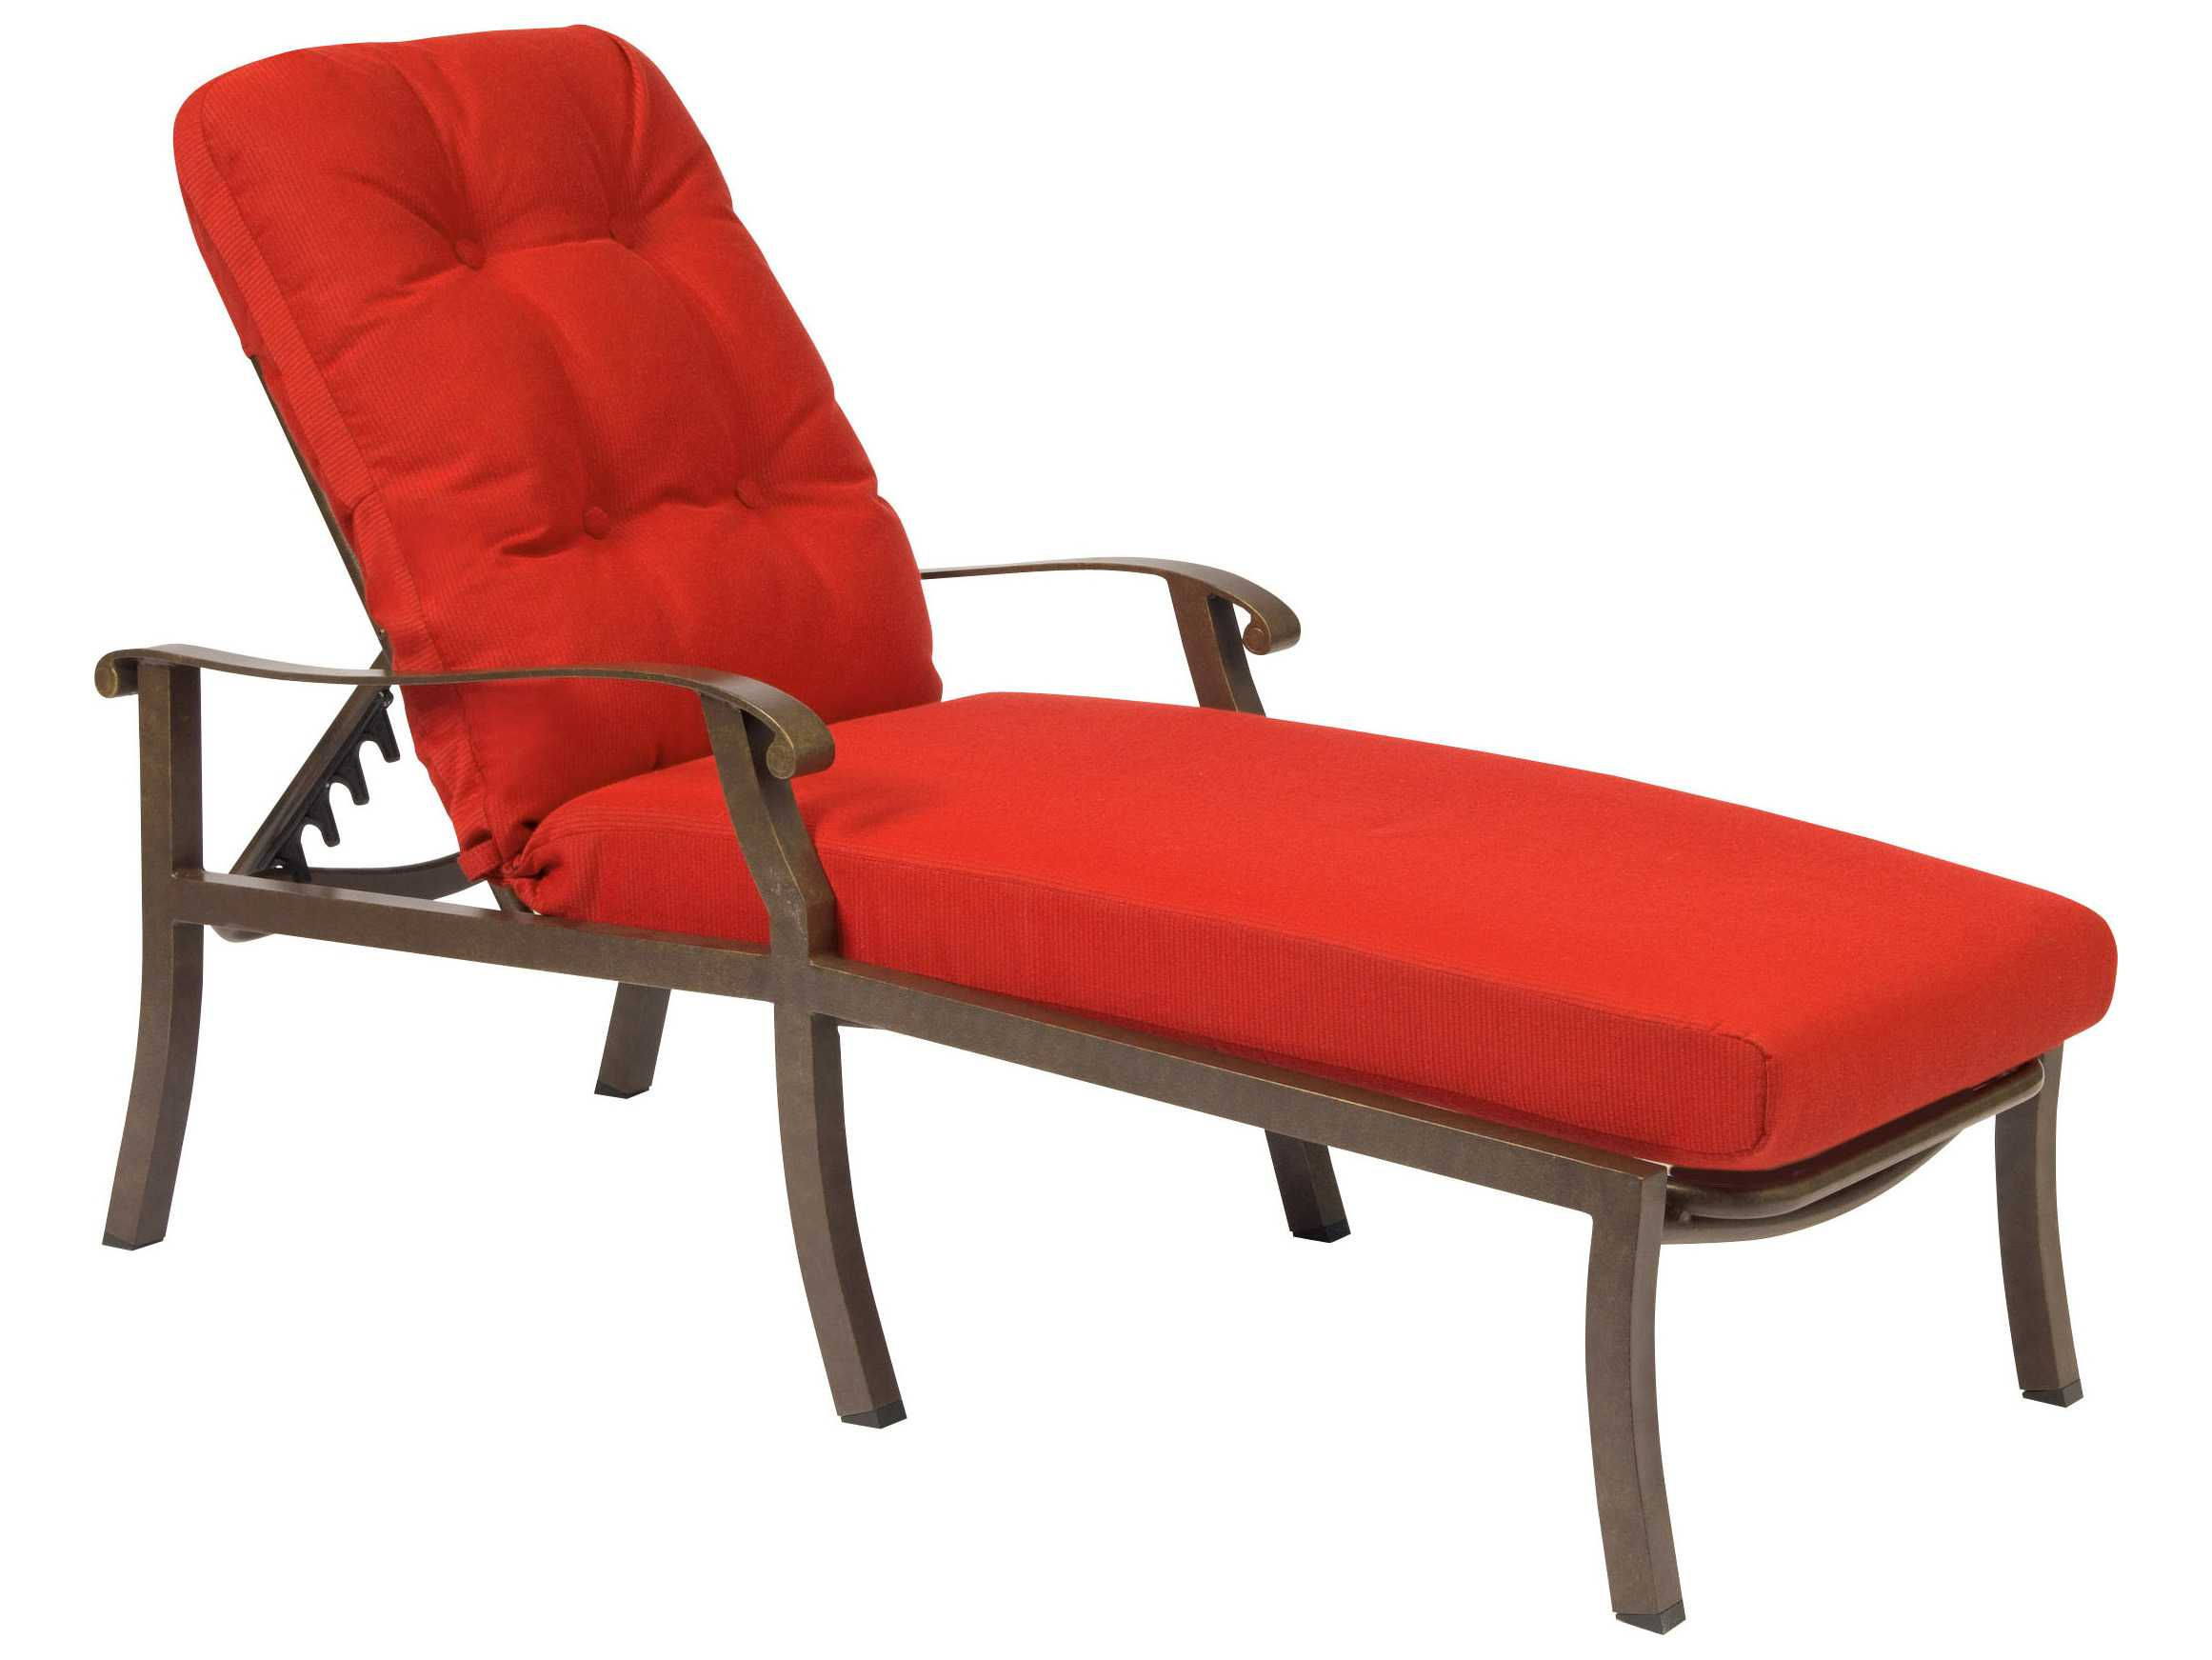 Woodard cortland cushion aluminum adjustable chaise lounge for Chaise longue cushion